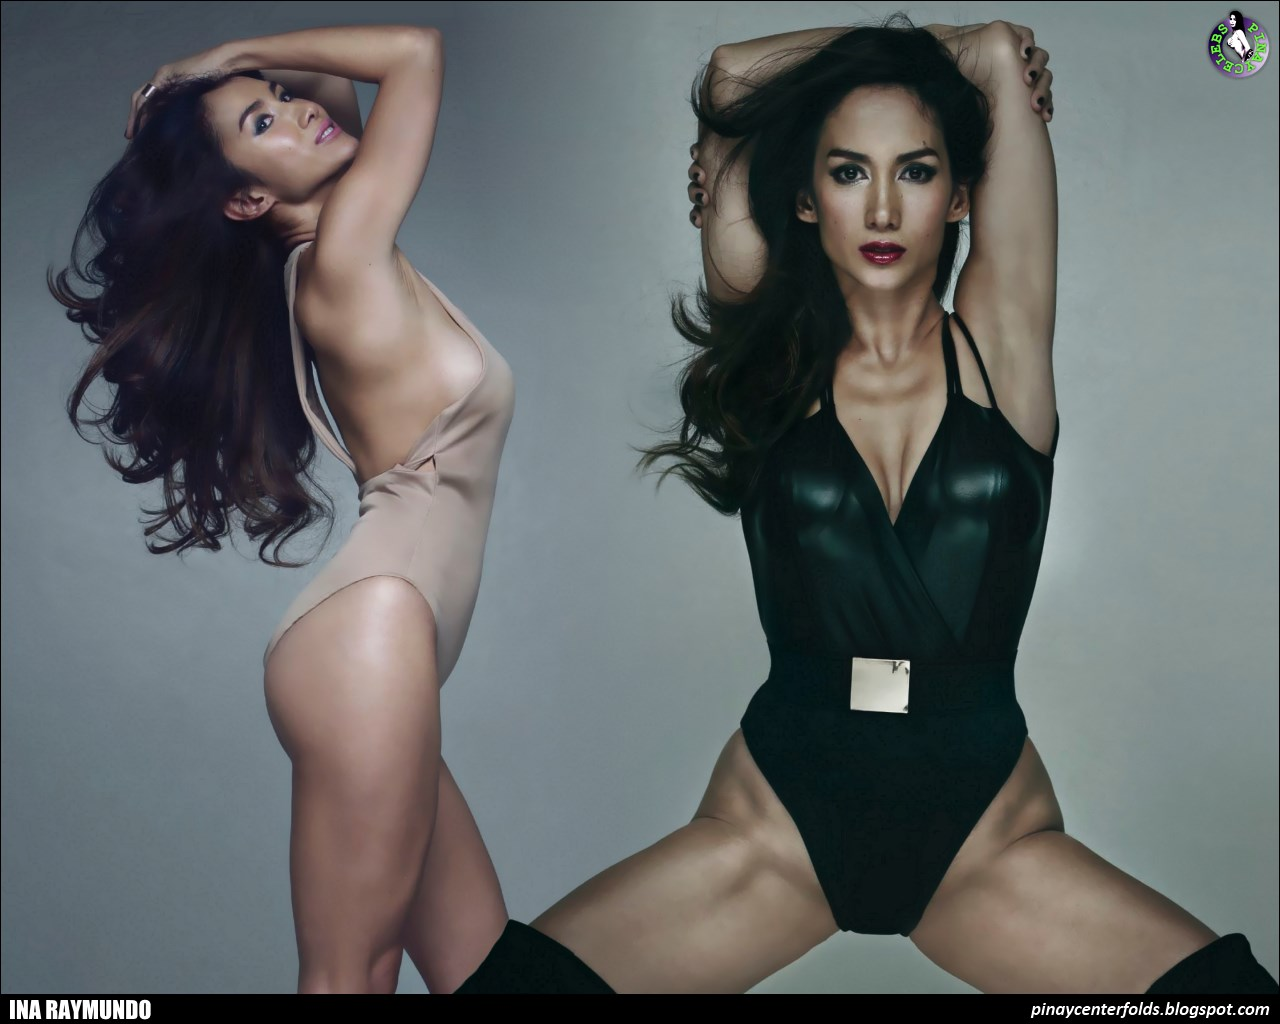 Nude photos of ina raymundo